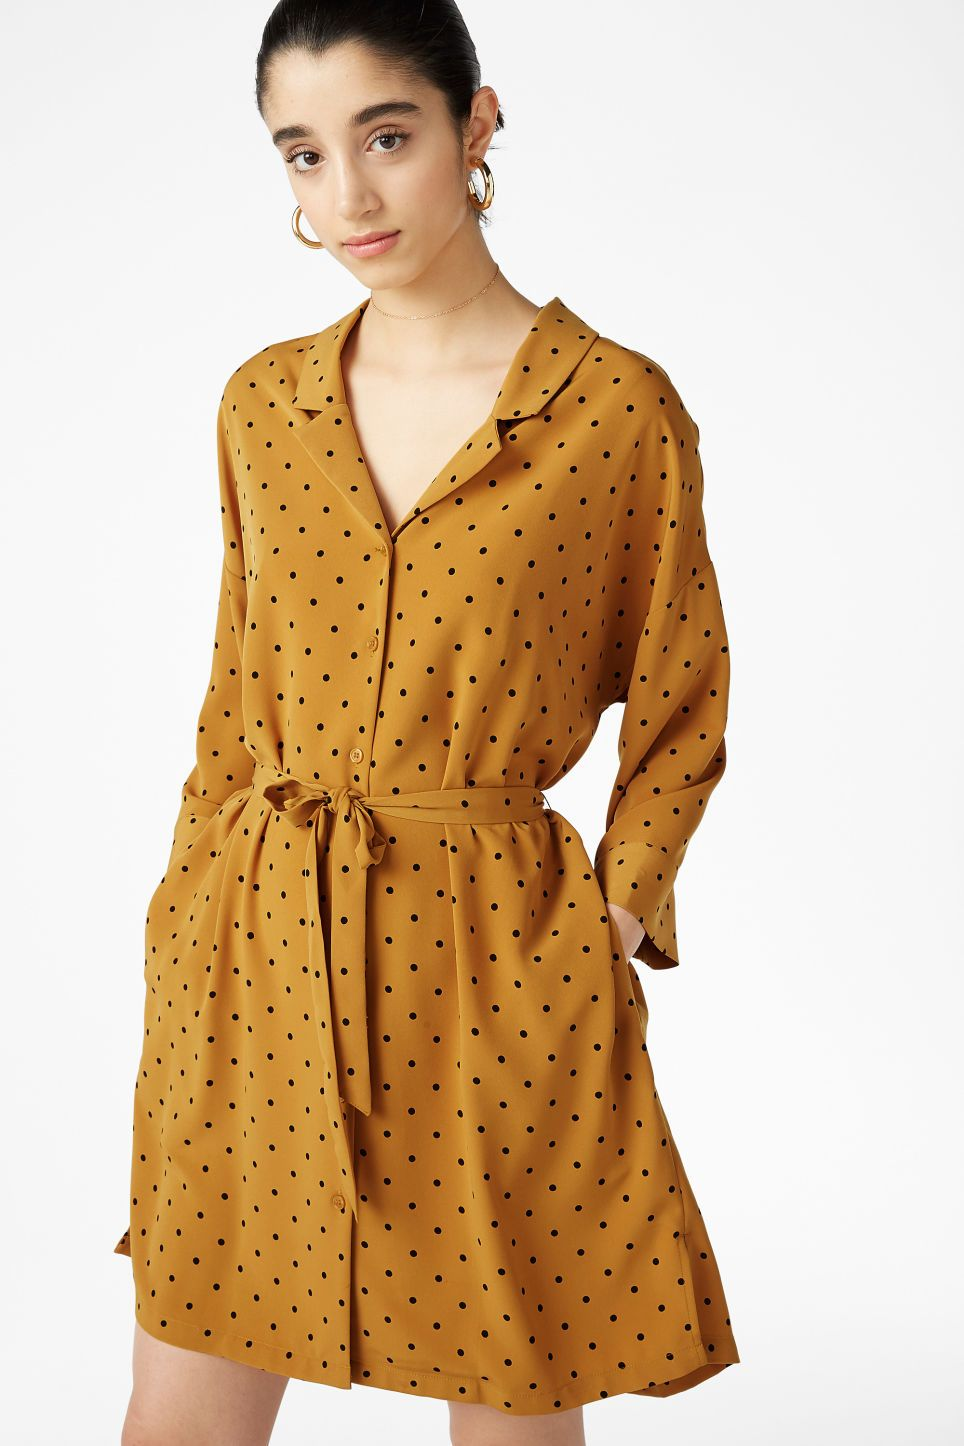 ef1953bf61 A classy knee-length shirt dress that ties in the waist. Super-soft 'n'  flowy with neat pockets hidden in the side seams. Yaas! In a size small the  chest w